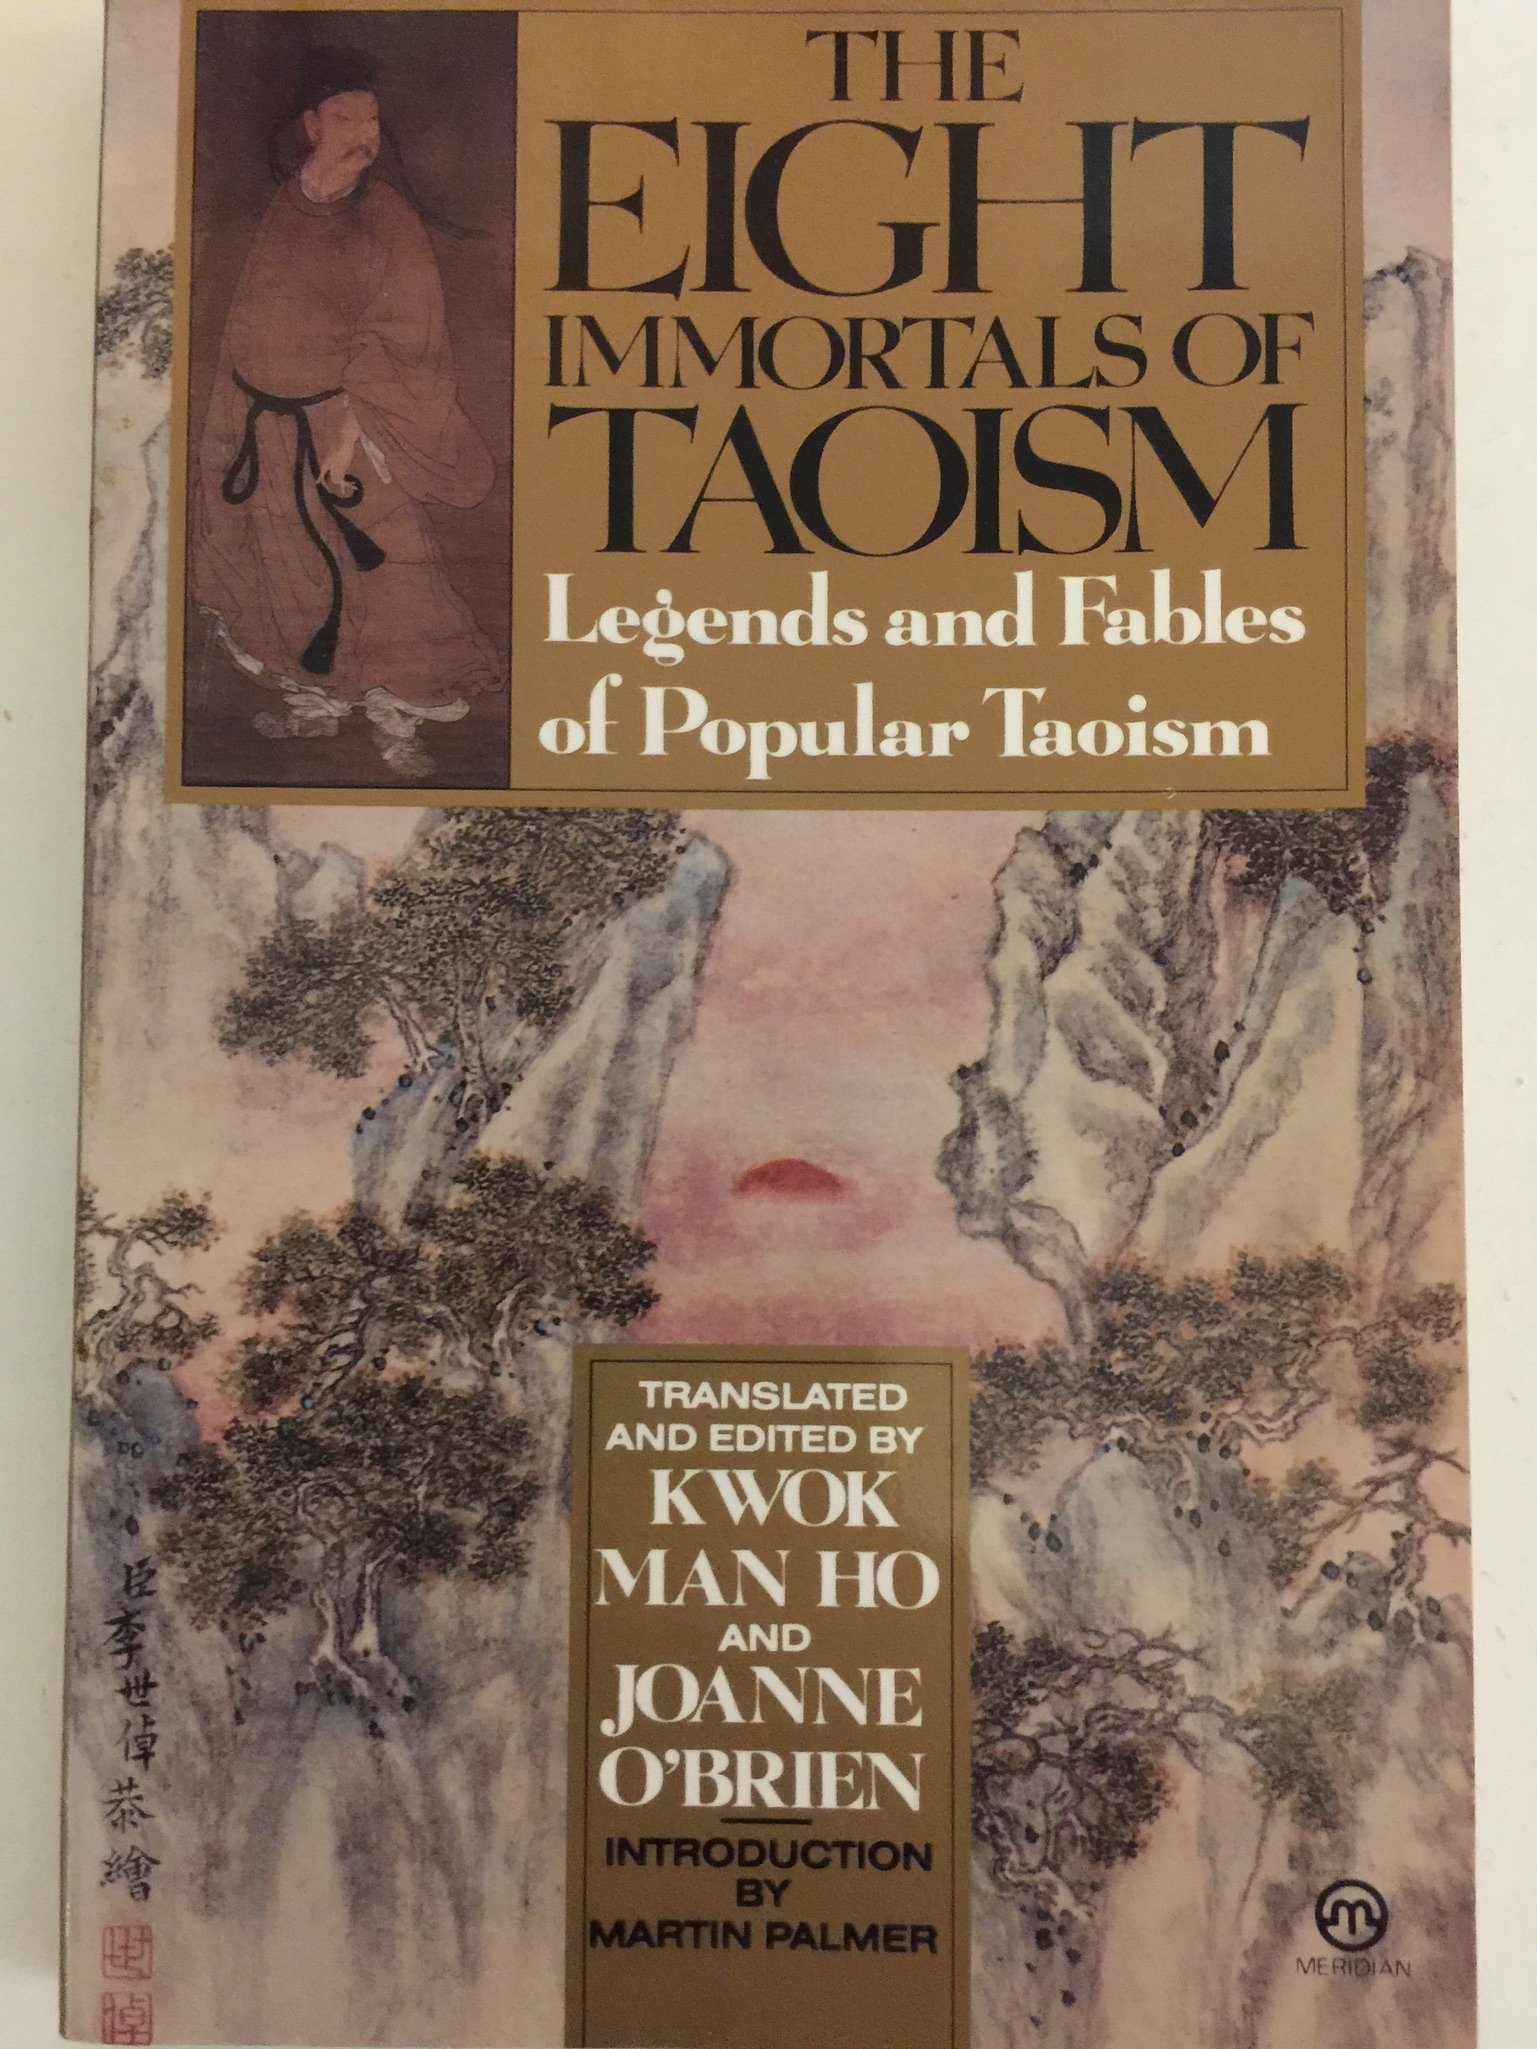 The Eight Immortals of Taoism: Legends and Fables of Popular Taoism